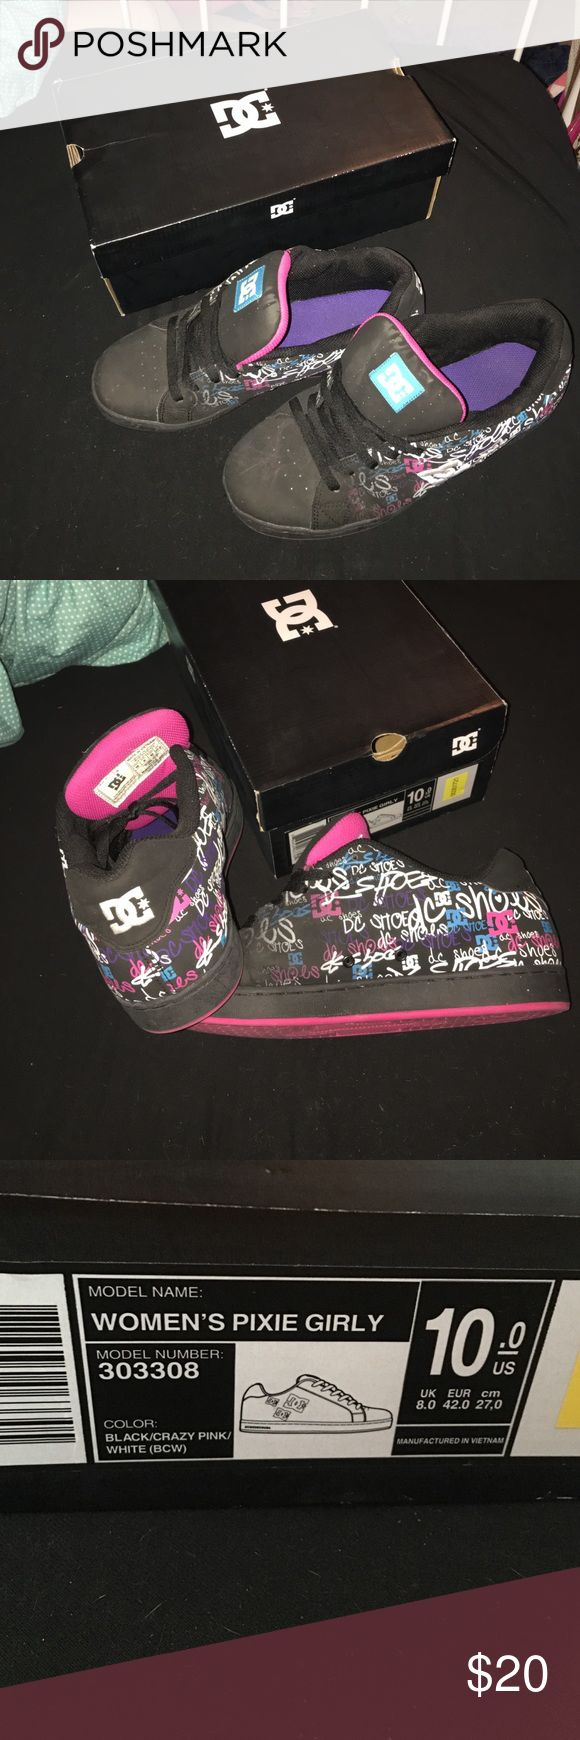 DC skateboard shoe(women's pixie girly-model name) only wore these like 10-15 times. light wear. bought a few years ago. Woman's size 10. Original box. Generous offers only DC Shoes Sneakers